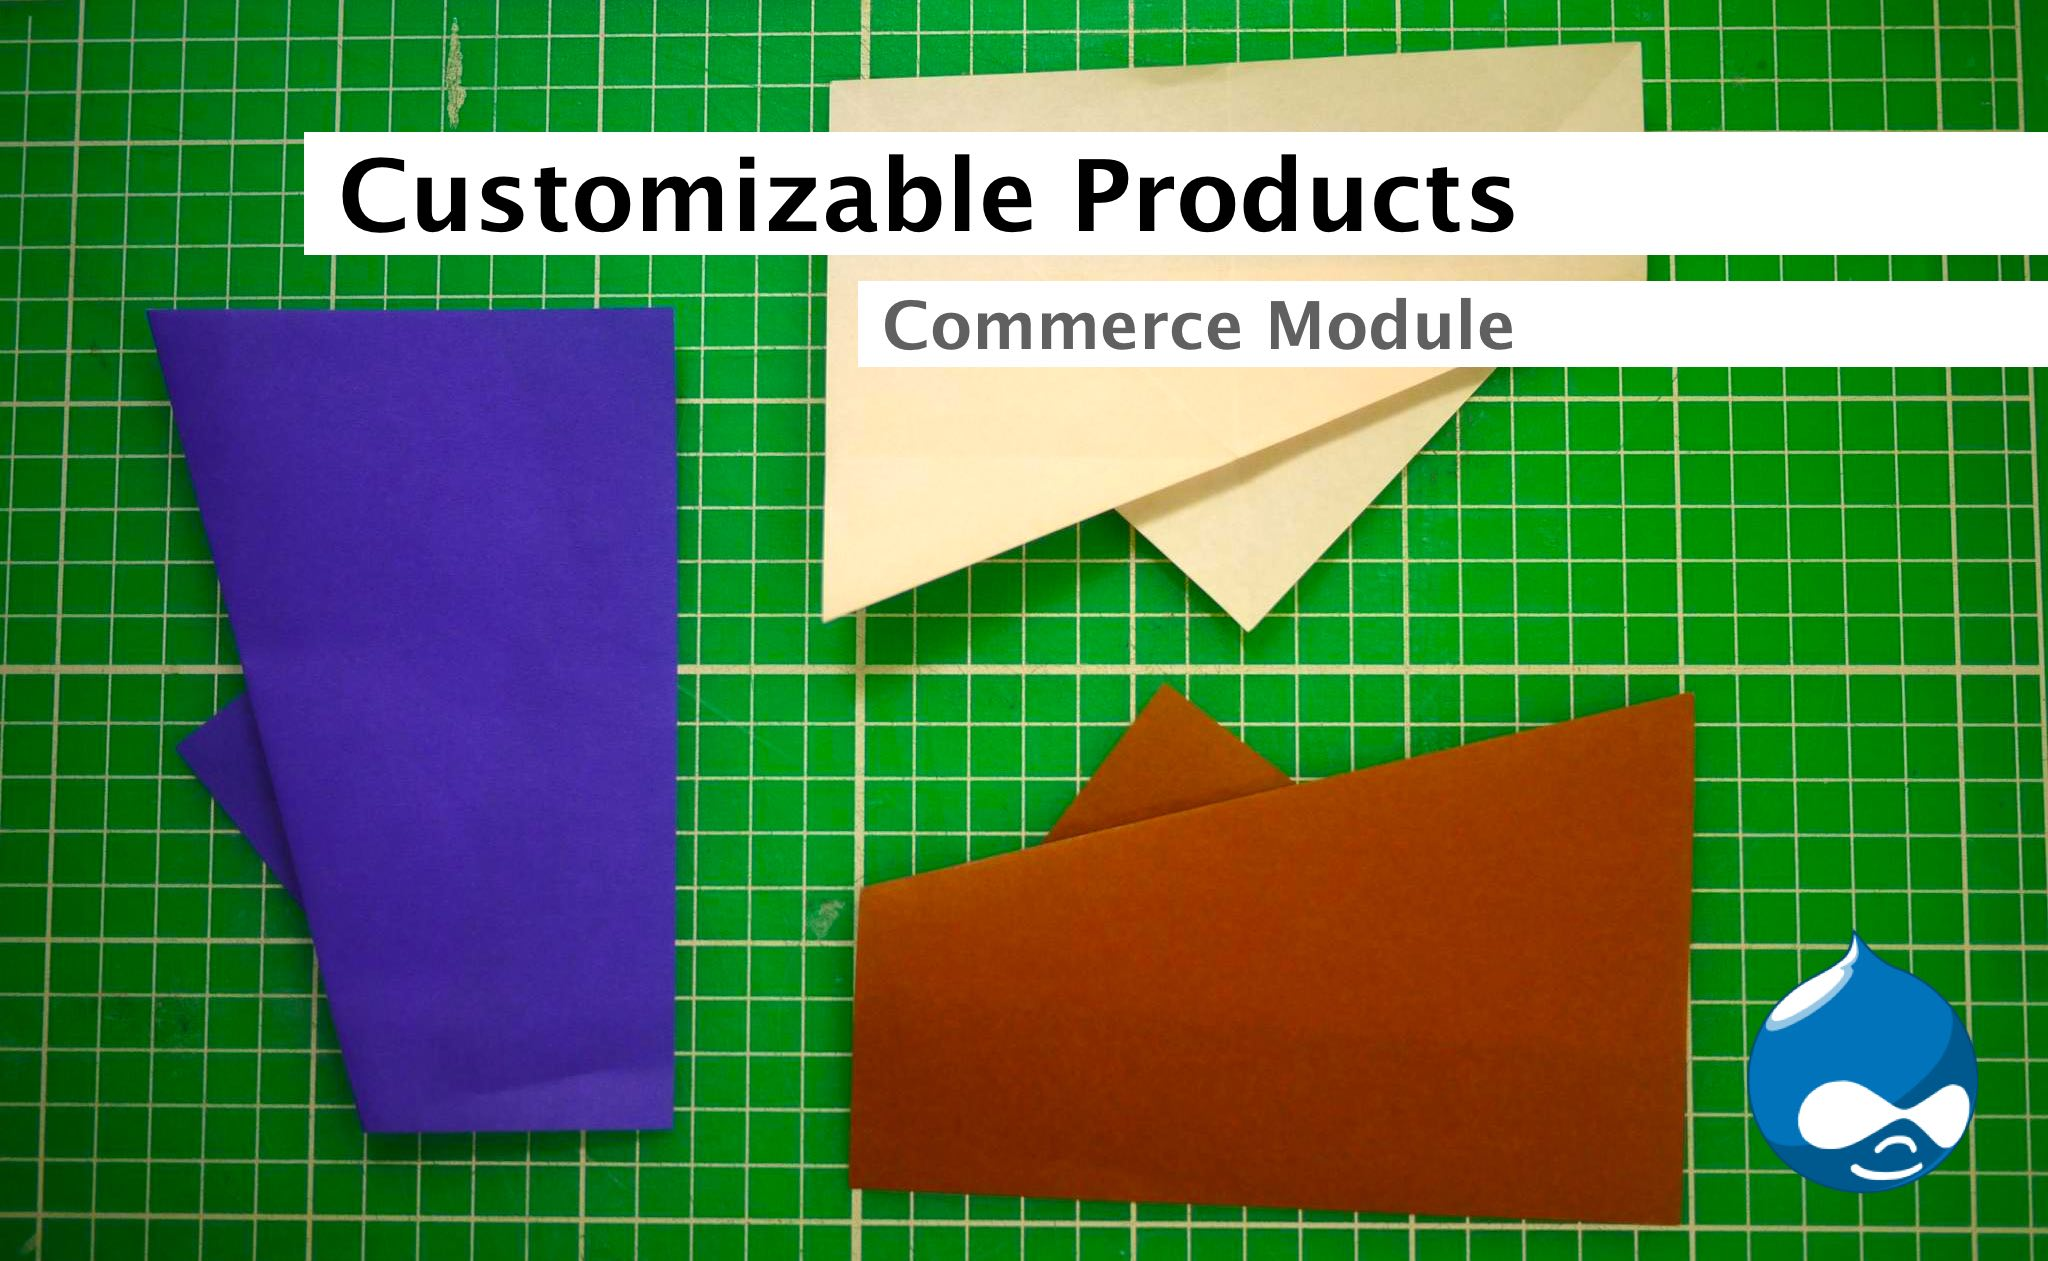 Customizable Drupal Products tutorial for Commerce Module